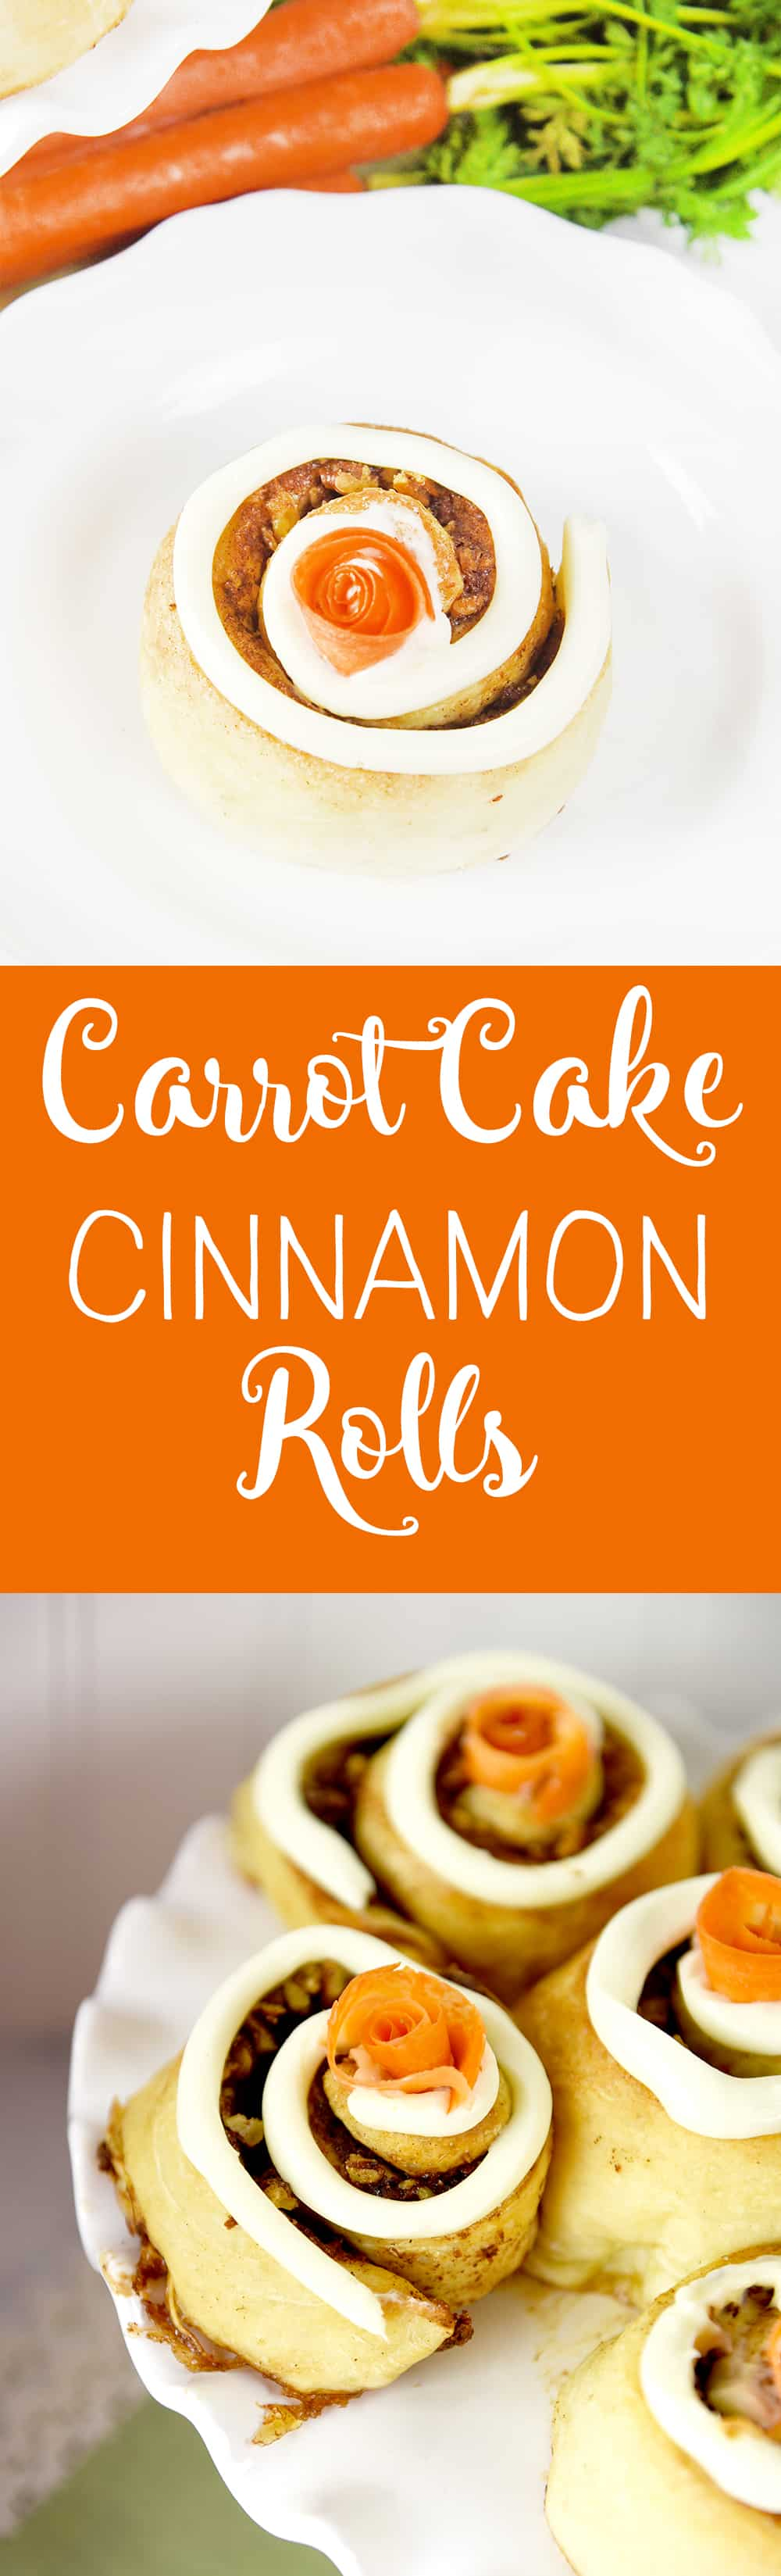 Carrot Cake Cinnamon Rolls. All the flavors of carrot cake wrapped up in a cinnamon roll!